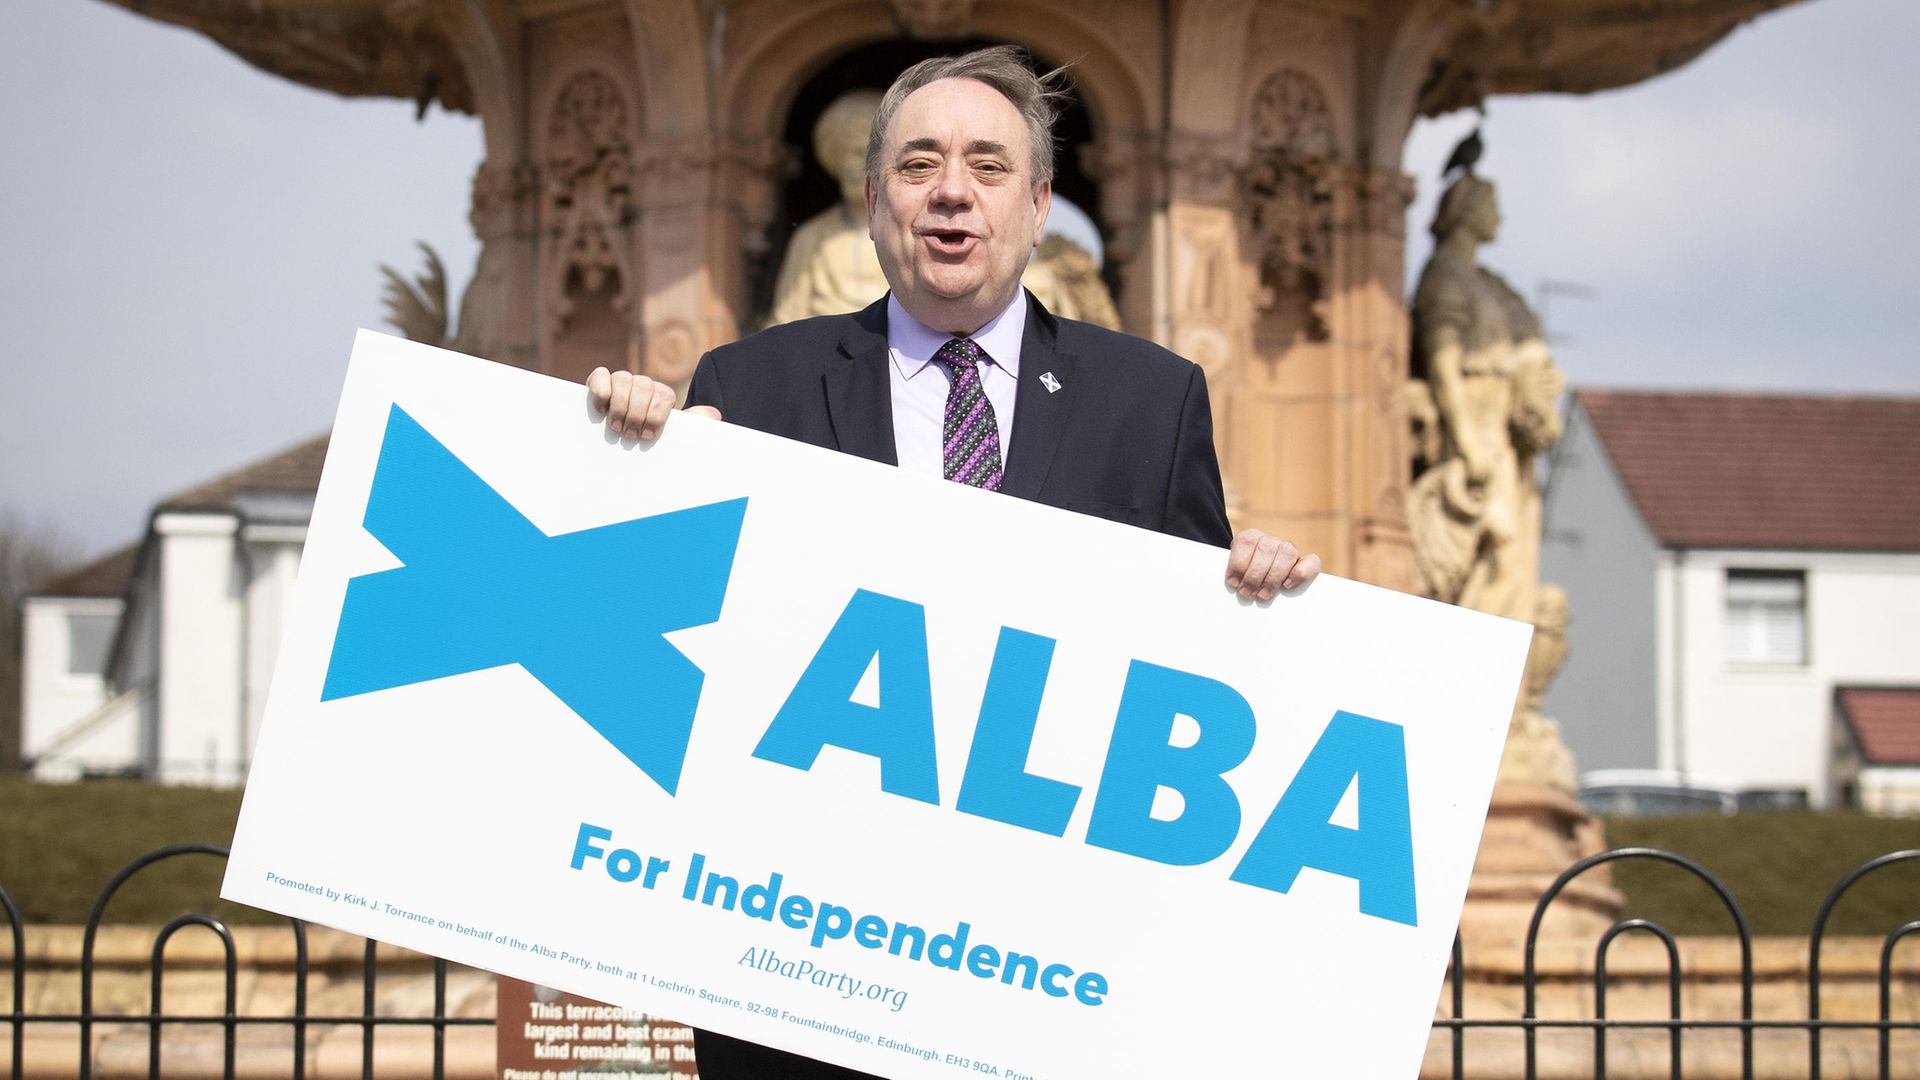 ALBA Party leader Alex Salmond at the Peoples Palace, Glasgow, to mark the start of the Glasgow campaign for the Scottish Parliamentary election. - Credit: PA